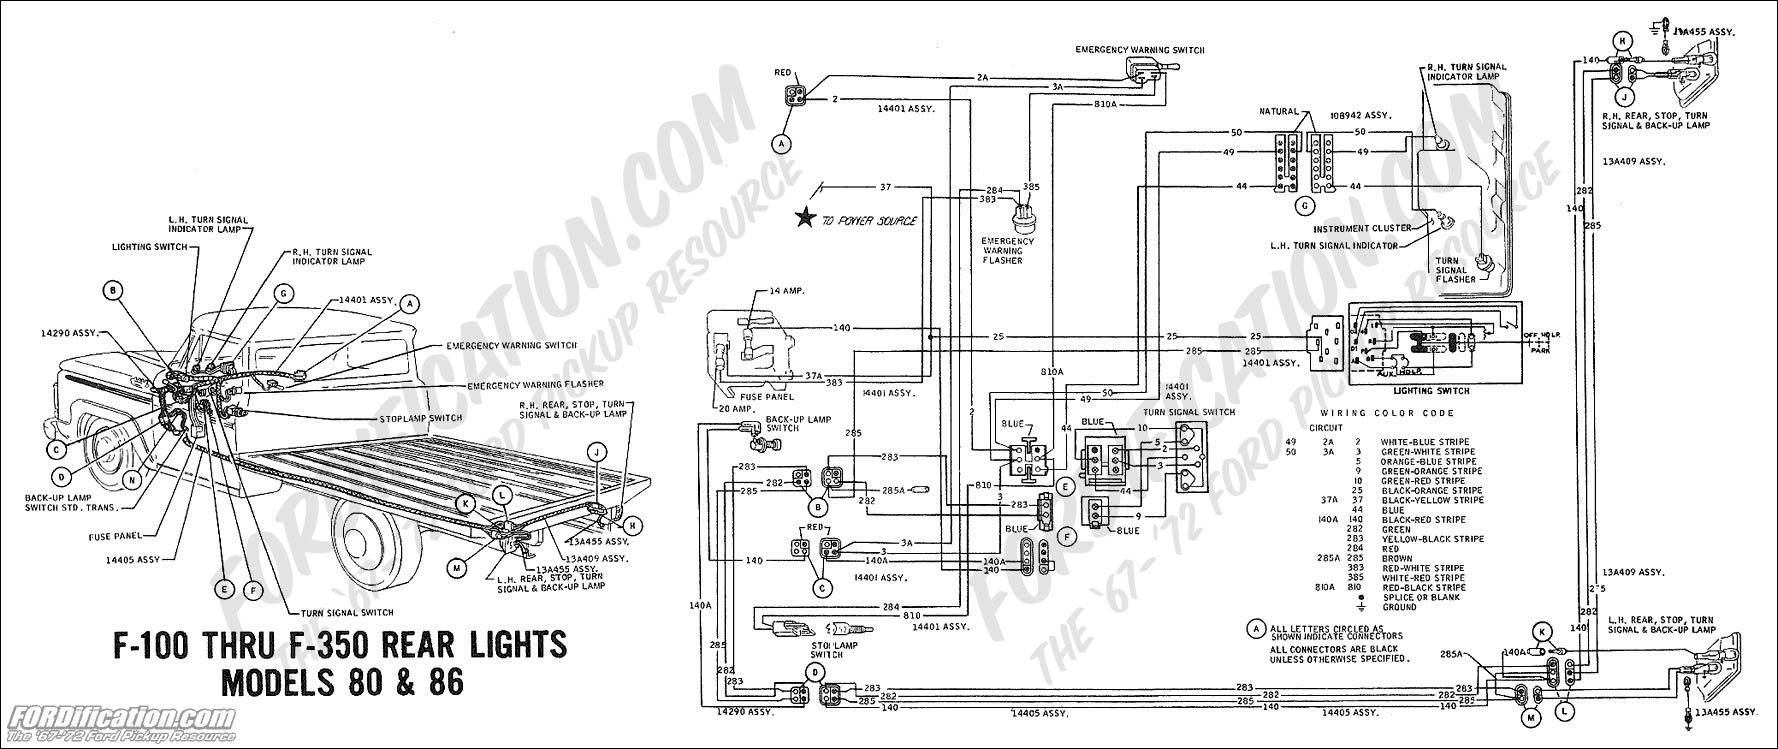 wiring_69rearlights mdls80 86 ford truck technical drawings and schematics section h wiring  at crackthecode.co